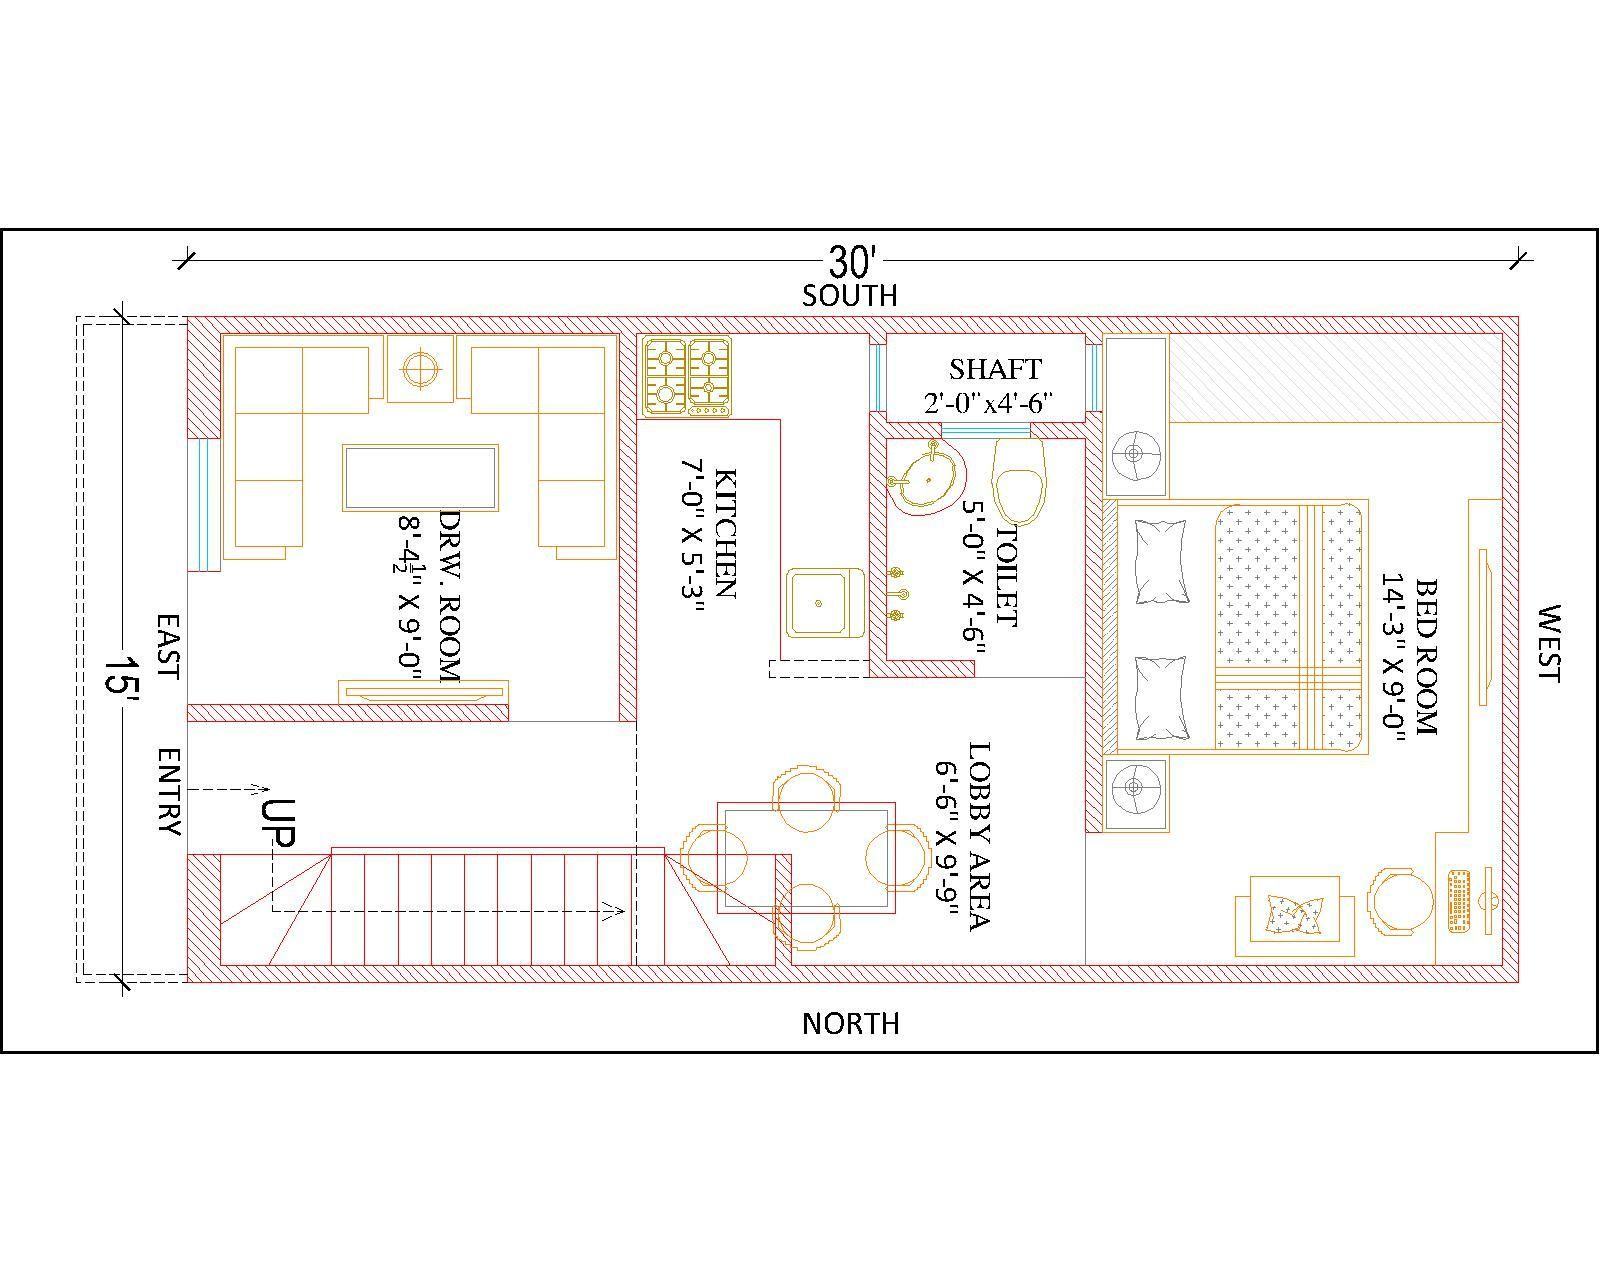 15 X 30 Ground Floor Plan 2bhk House Plan House Plans Indian House Plans